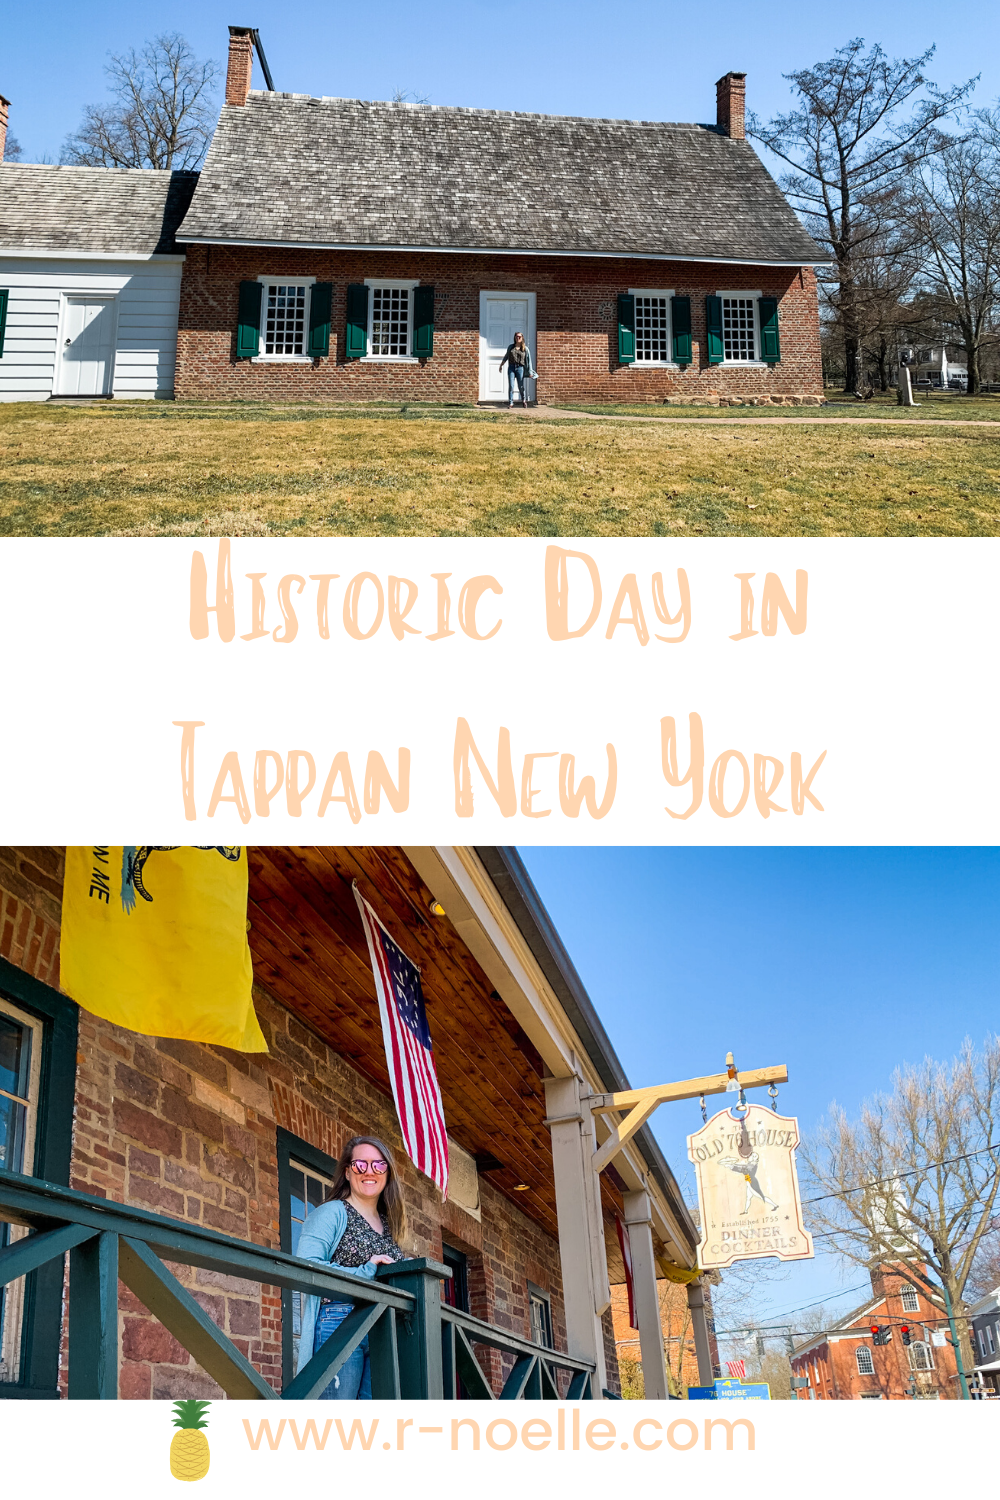 Tappan and Piermont New York have major historical significance for the Revolutionary War and World War II. Get coffee at Boxer Donuts, go for a walk or cycle the area and see all the historical spot sin one day! I break down highlight of my favorite spots and why I visited them!